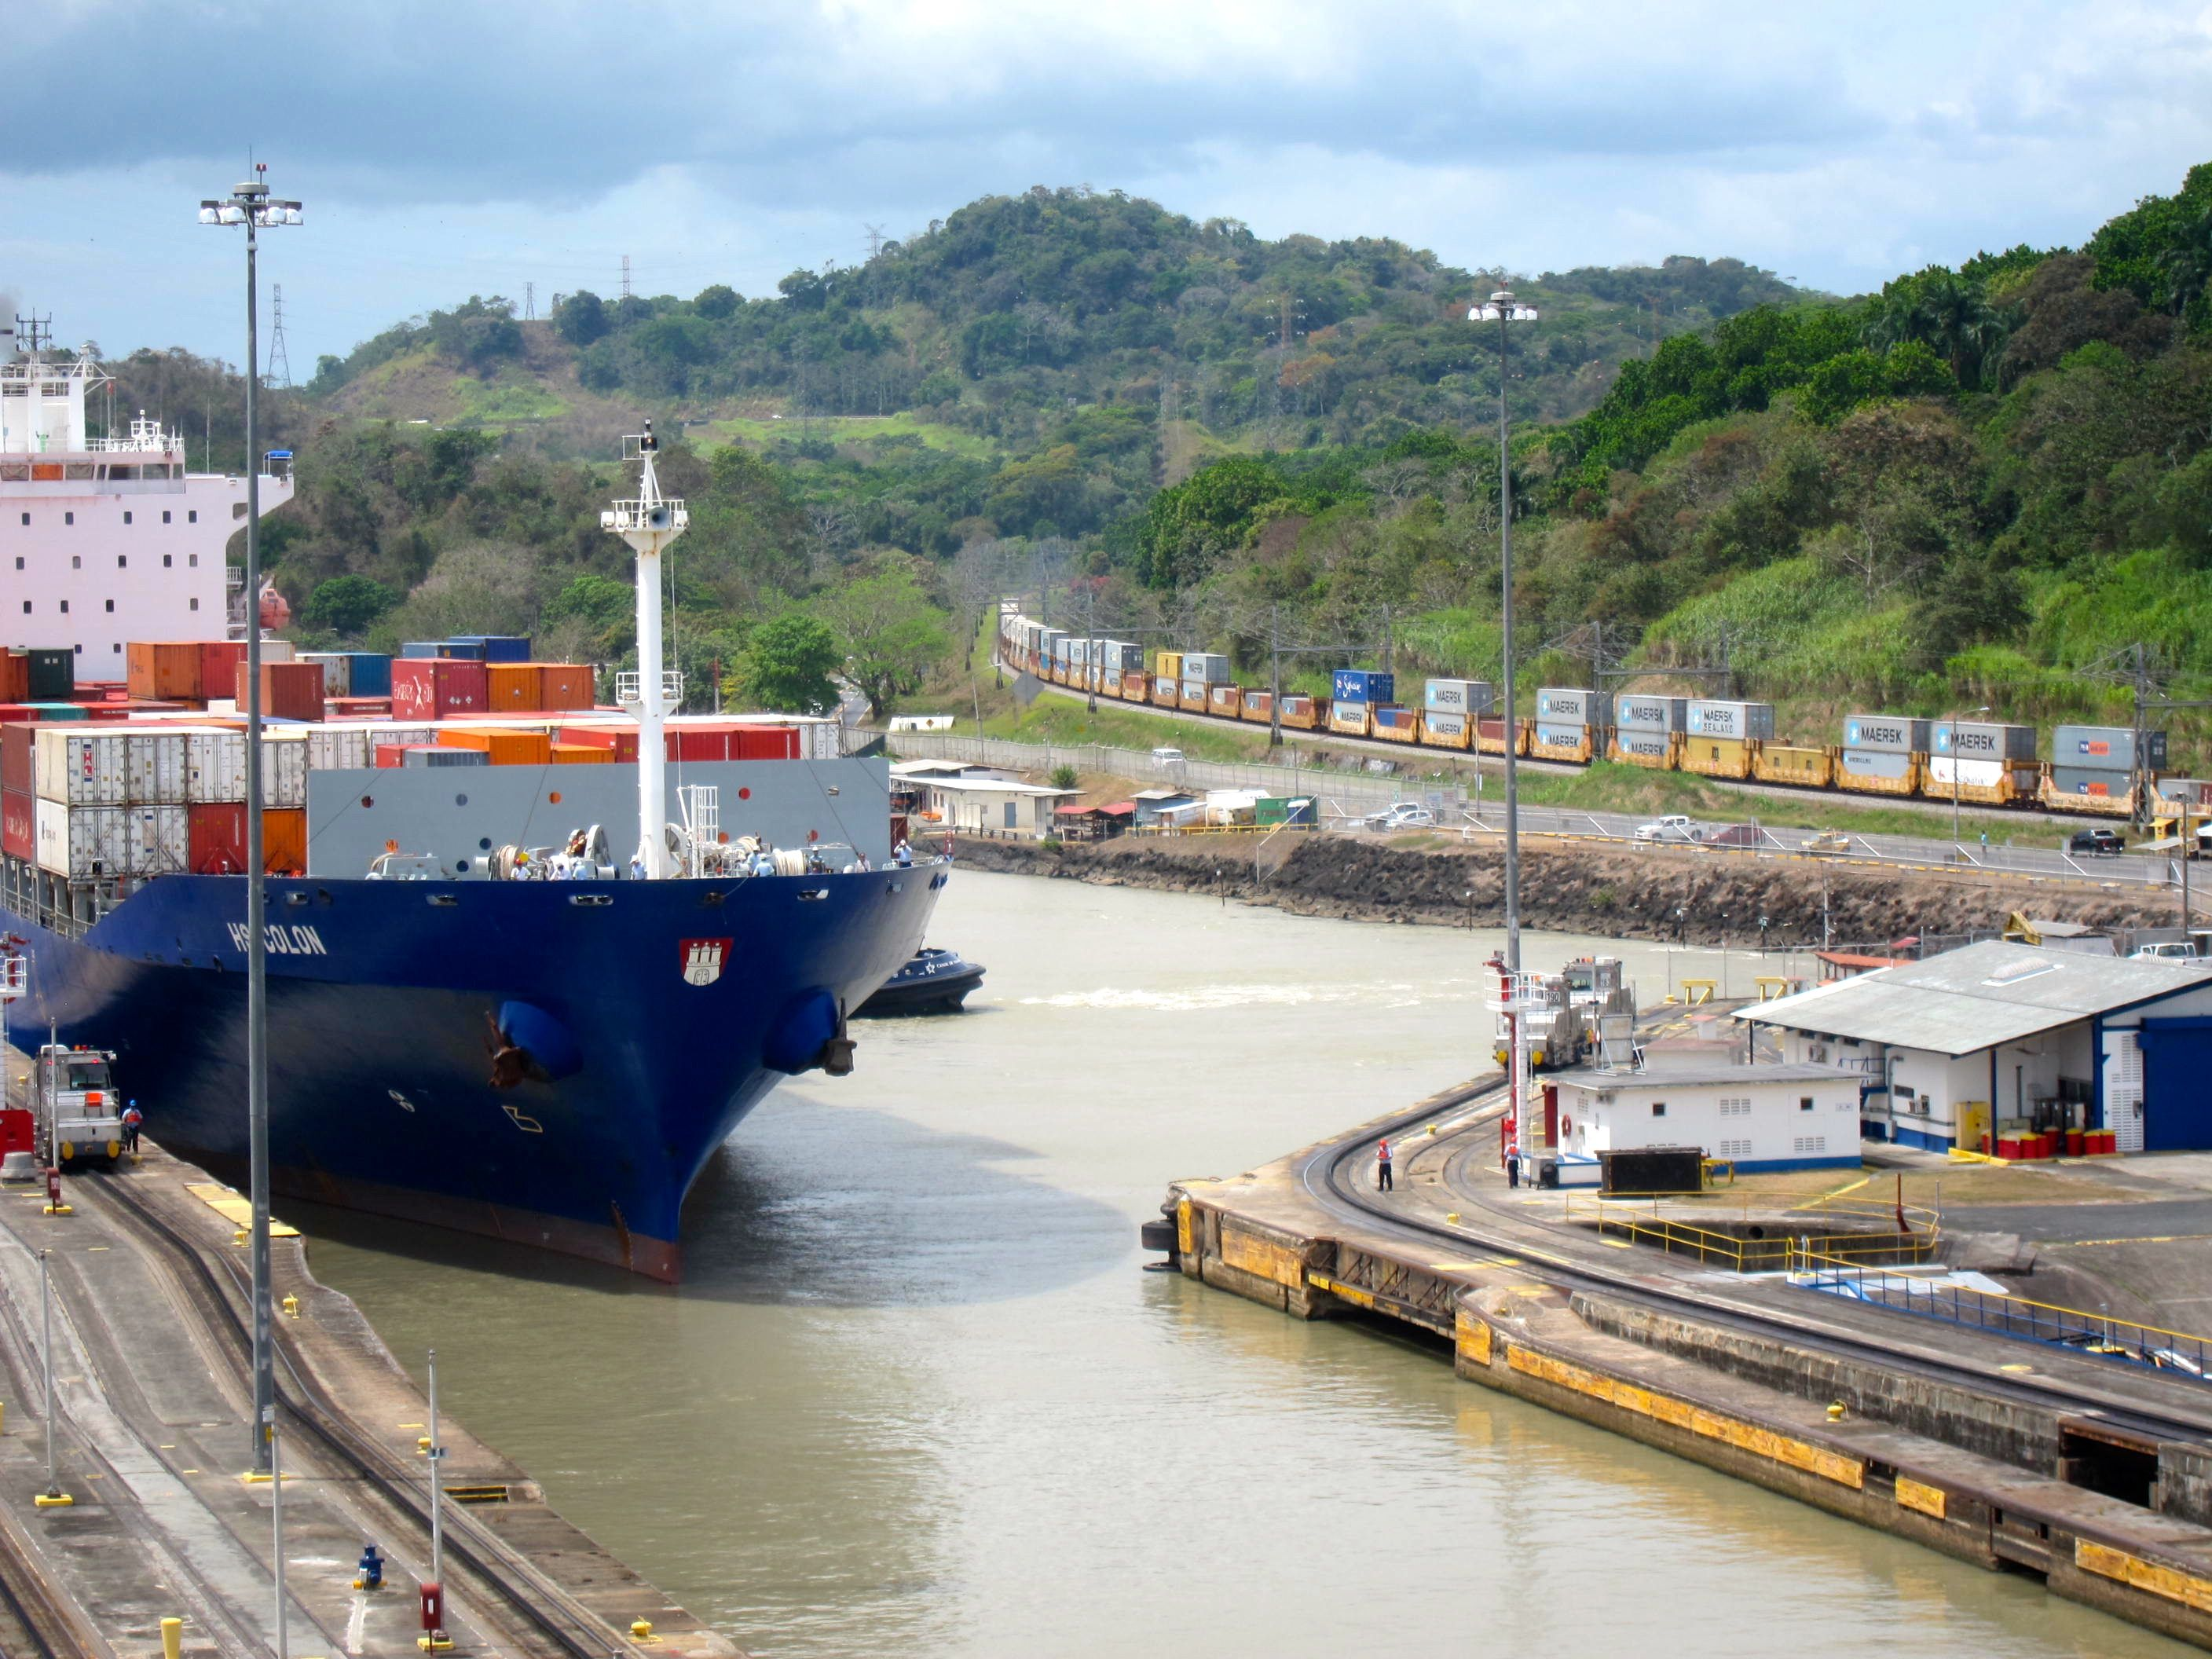 panama canal short essay Panama canal research papers the panama canal, by providing a short and the canal will be the sole property of panama, but the canal will remain.